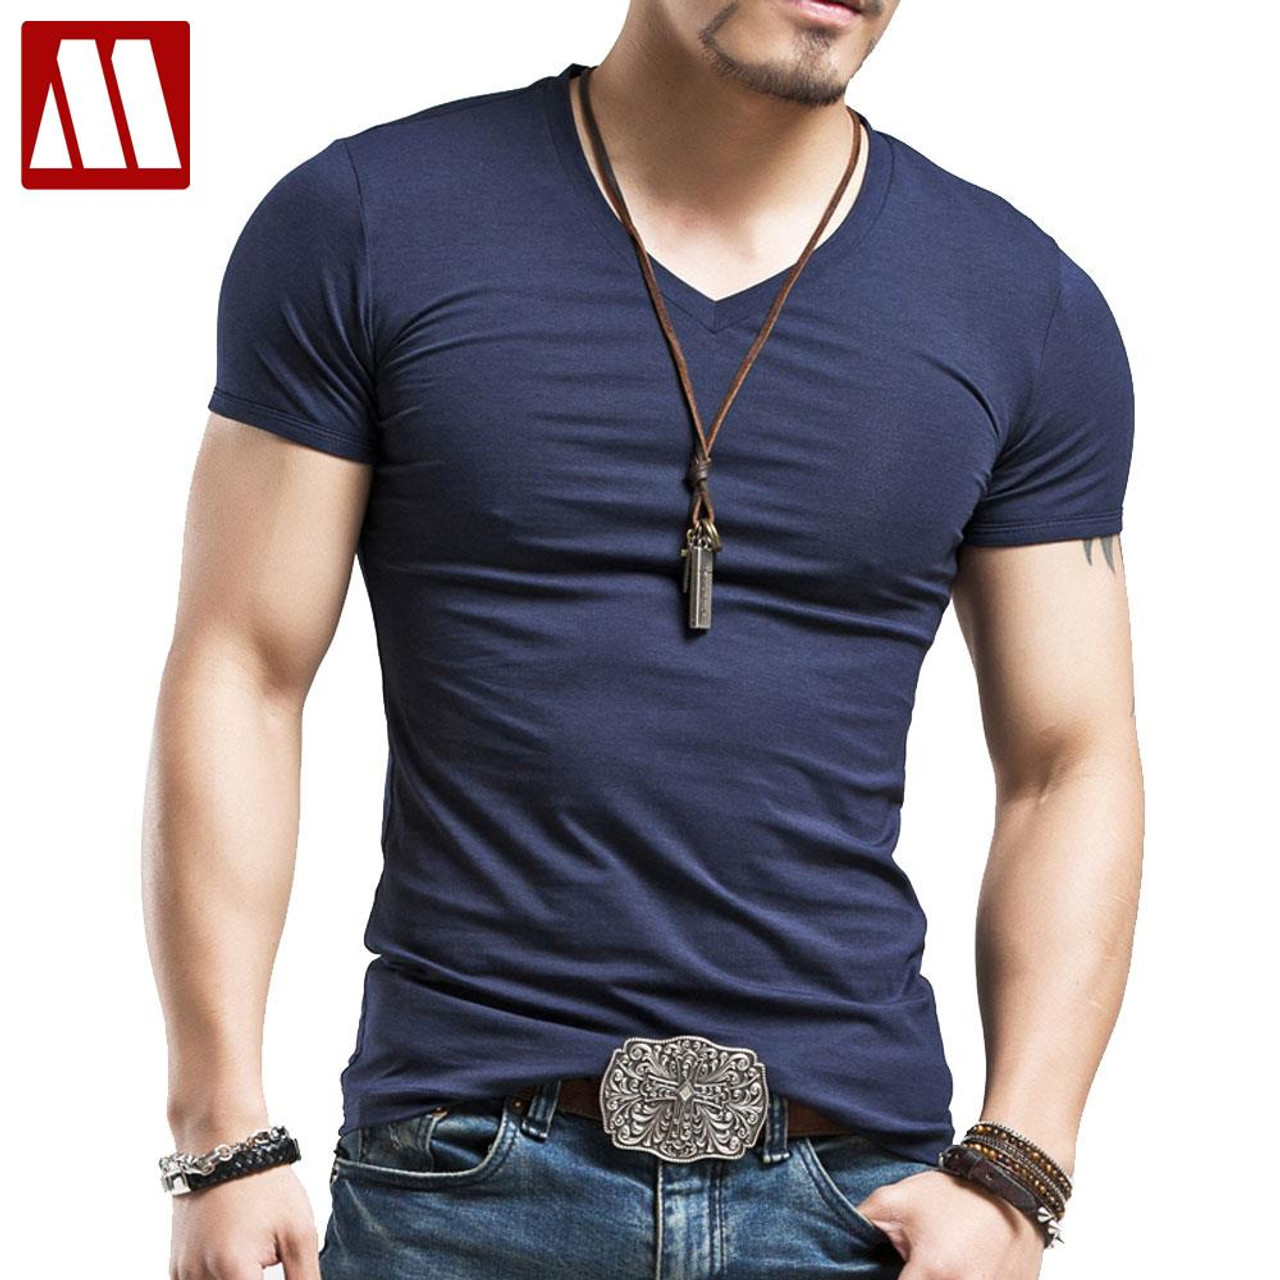 6053fbb37cf Men s Tops Tees 2018 summer new cotton v neck short sleeve t shirt men  fashion trends ...